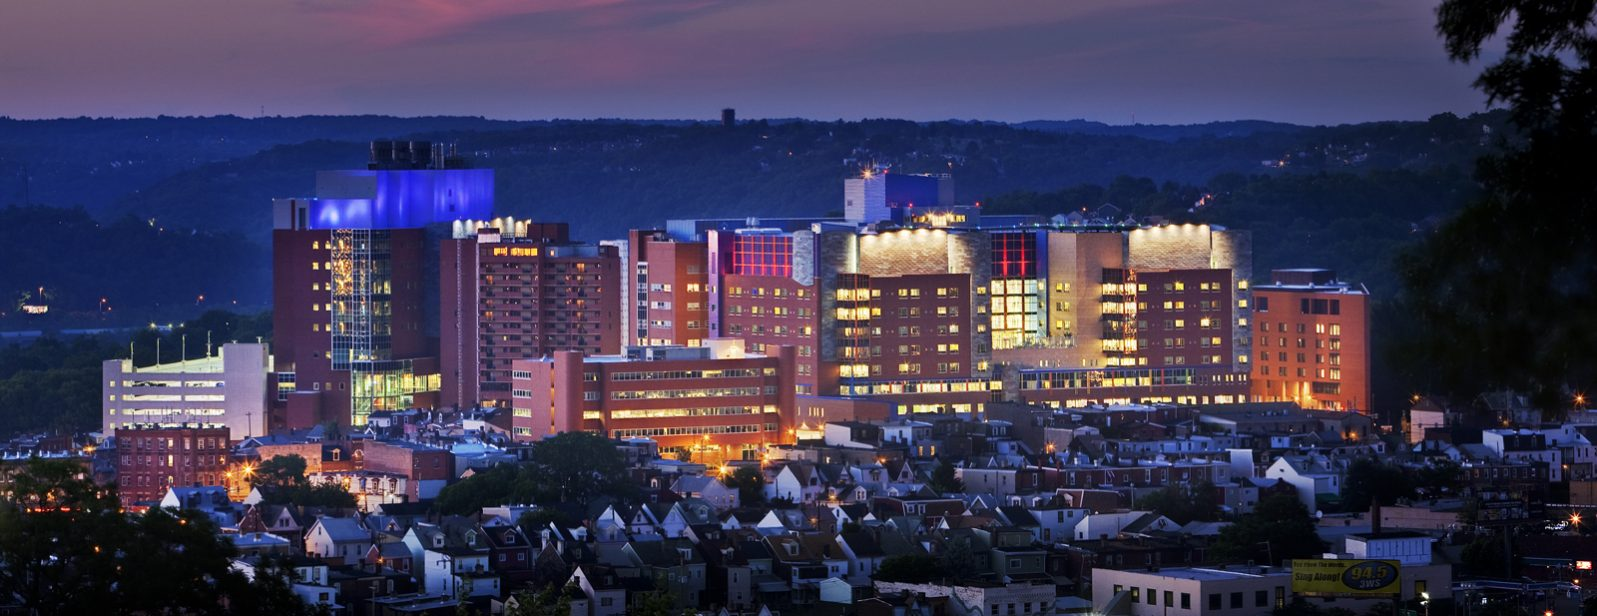 Children's Hospital of Pittsburgh of UPMC | CannonDesign